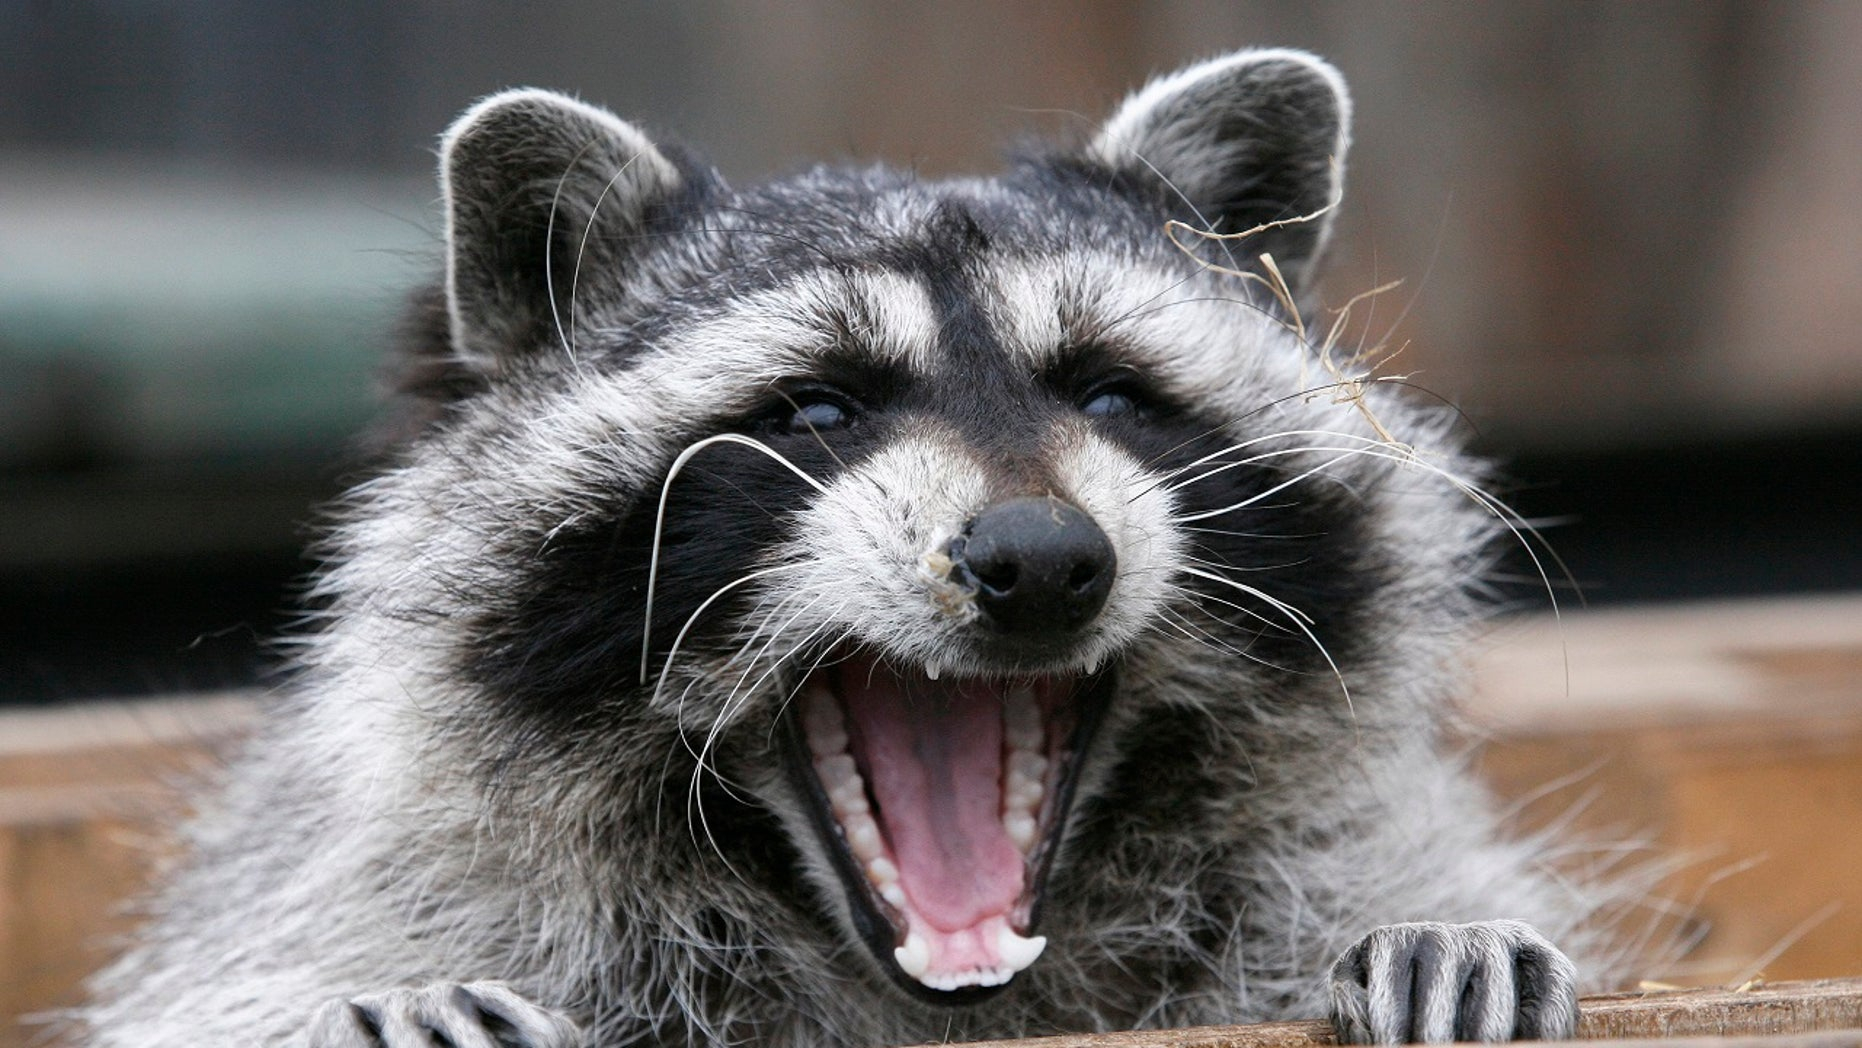 Raccoons with distemper can also get aggressive, according to health officials.